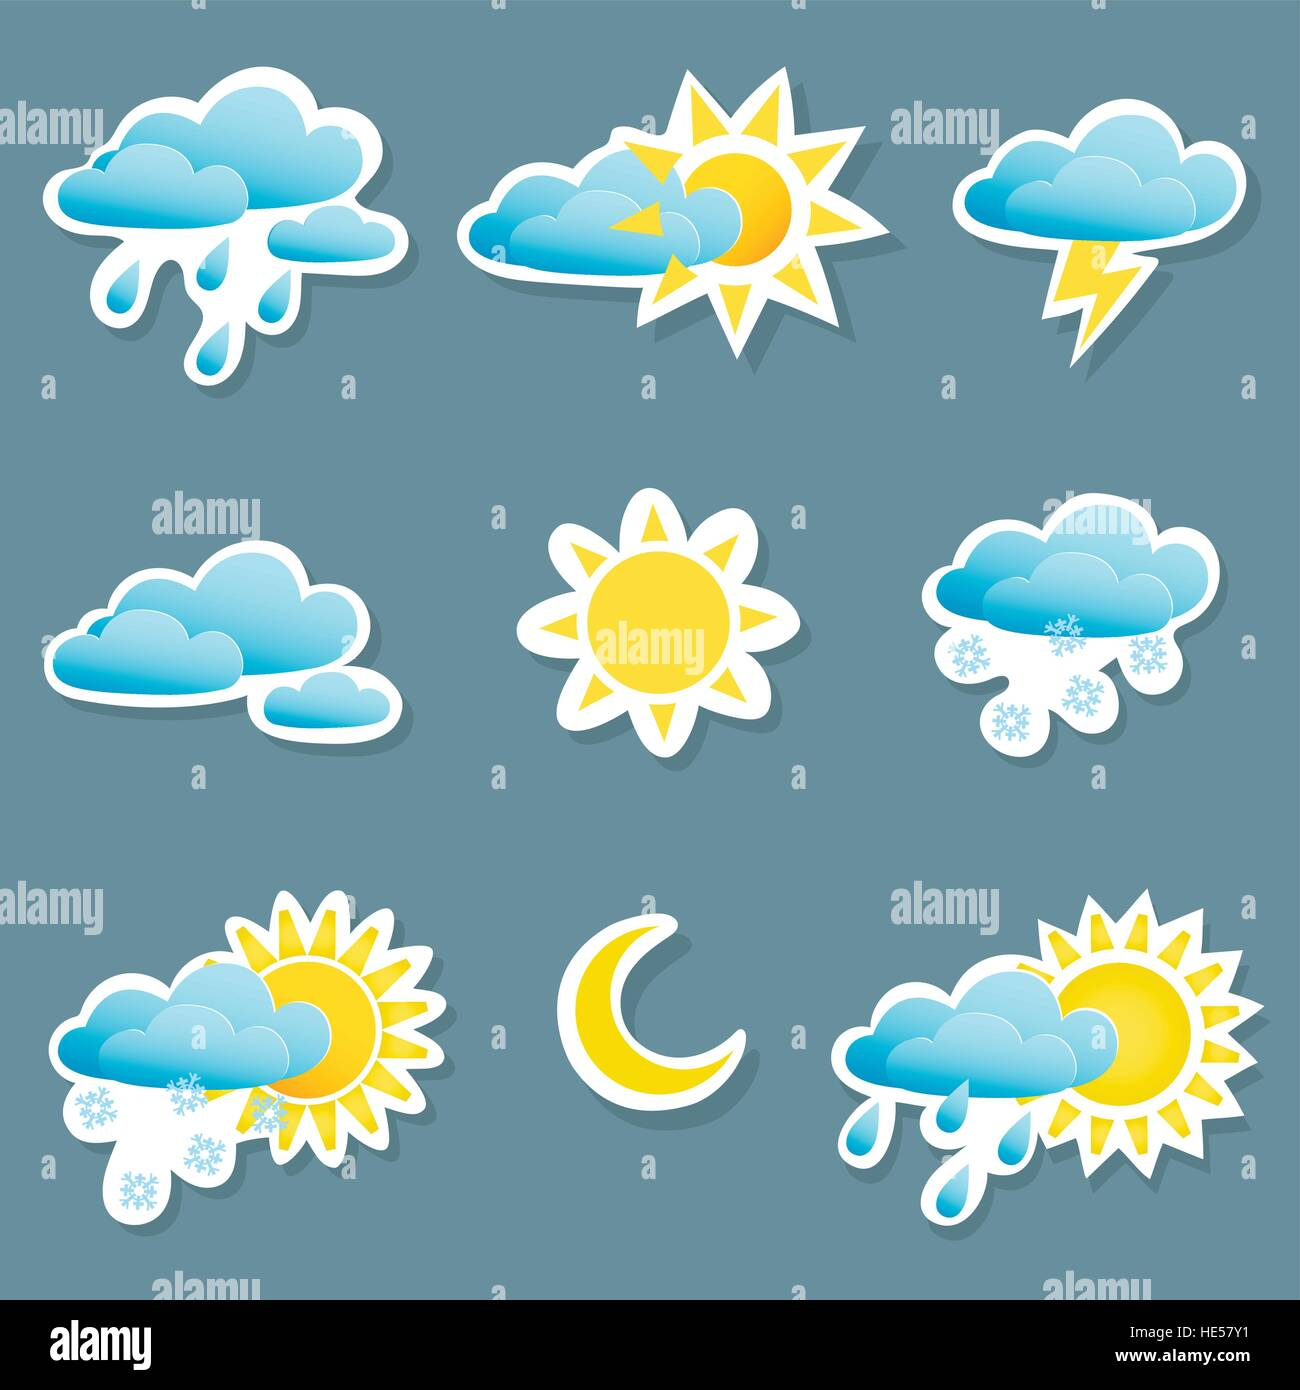 3c5fa0b7af set of icons depicting different weather conditions Stock Vector Art ...